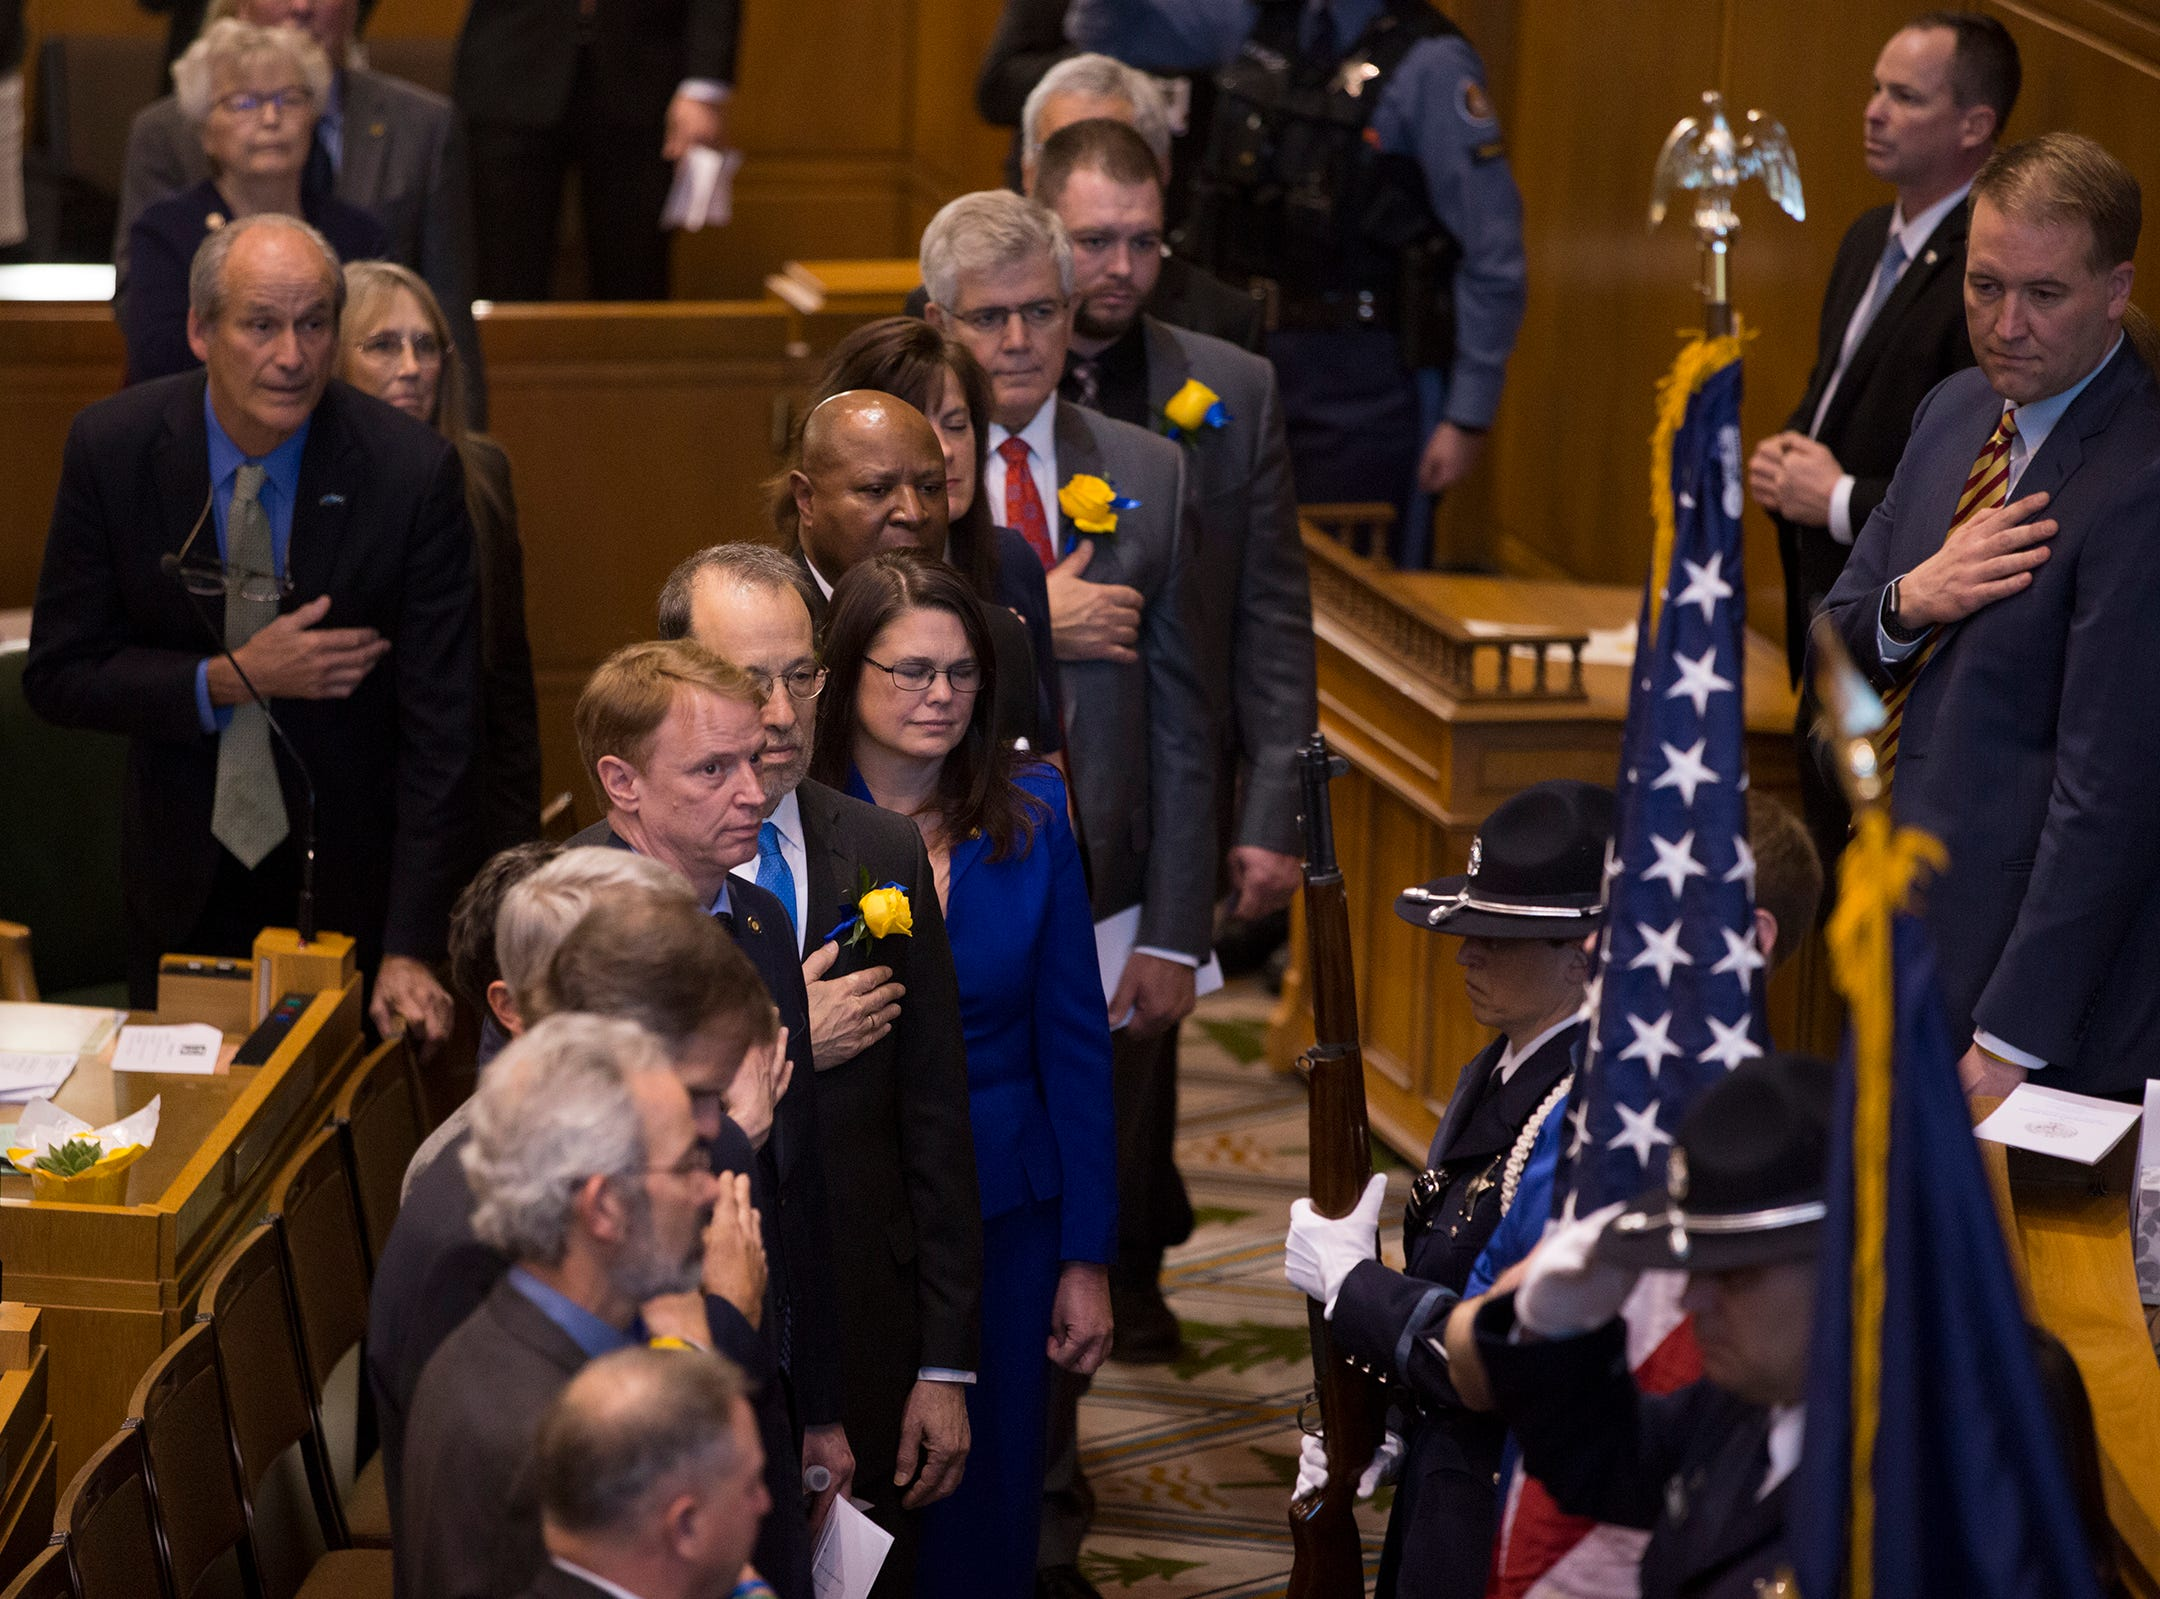 Oregon State Senators at Governor Kate Brown's inaugural address at the Oregon State Capitol on Jan. 14, 2019.